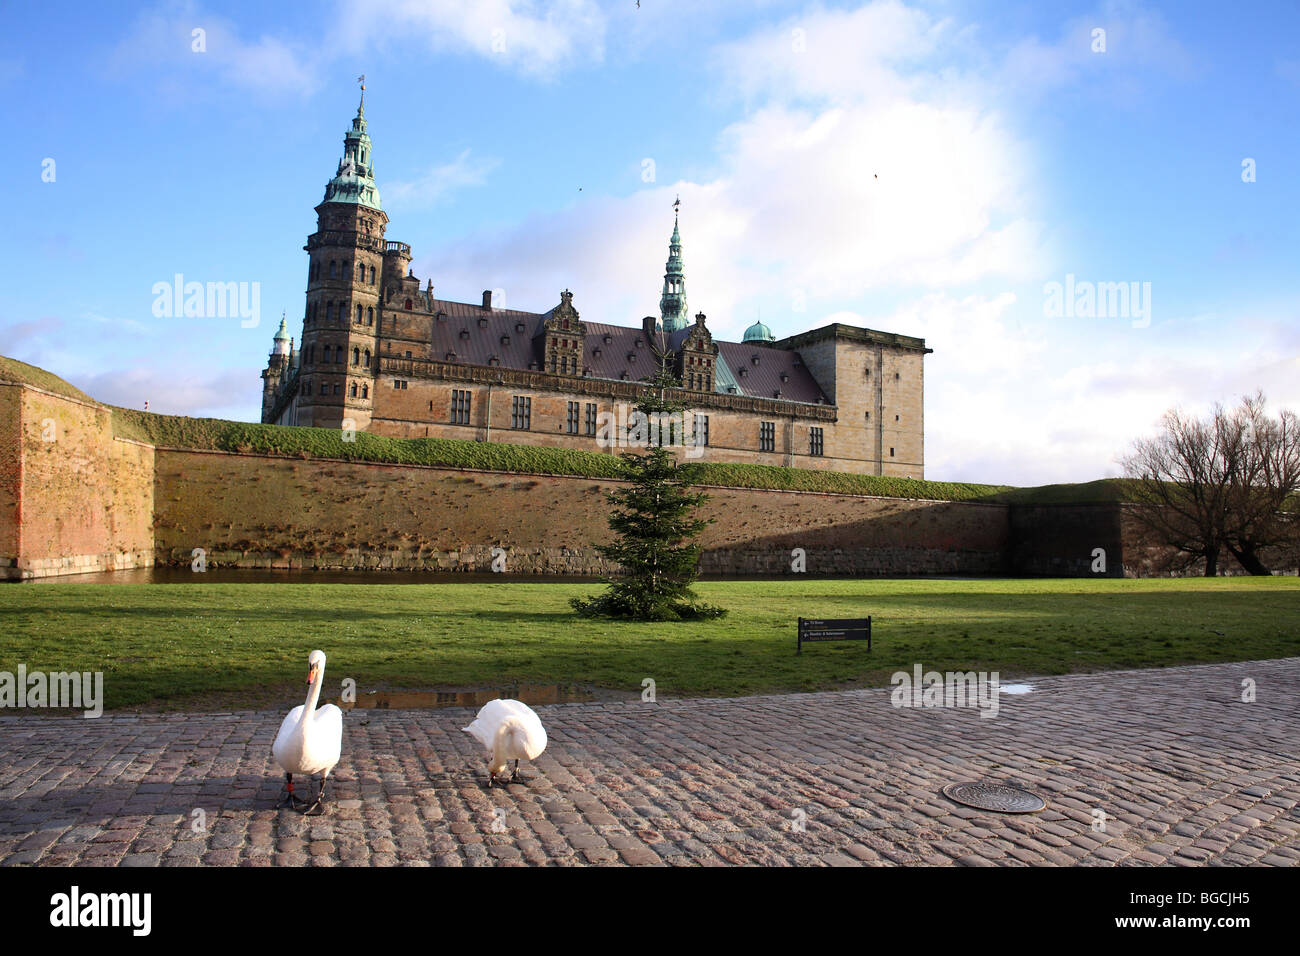 Kronborg Castle in Helsingør (in English also known as Elsinore) on the island of Zealand (Sjælland) in - Stock Image